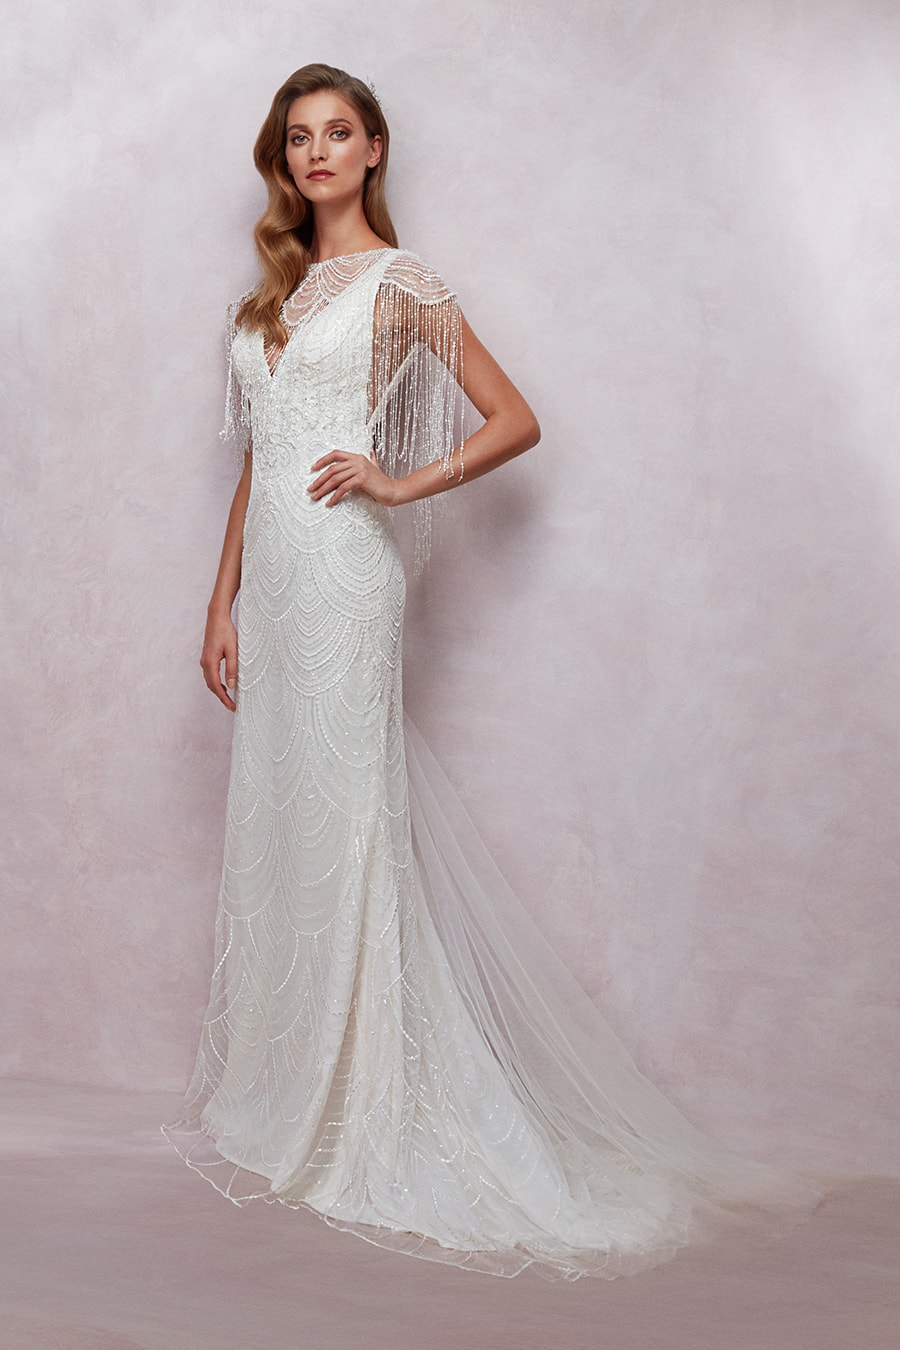 Bride&co Viola Chan 2018 Collection on SouthBound Bride